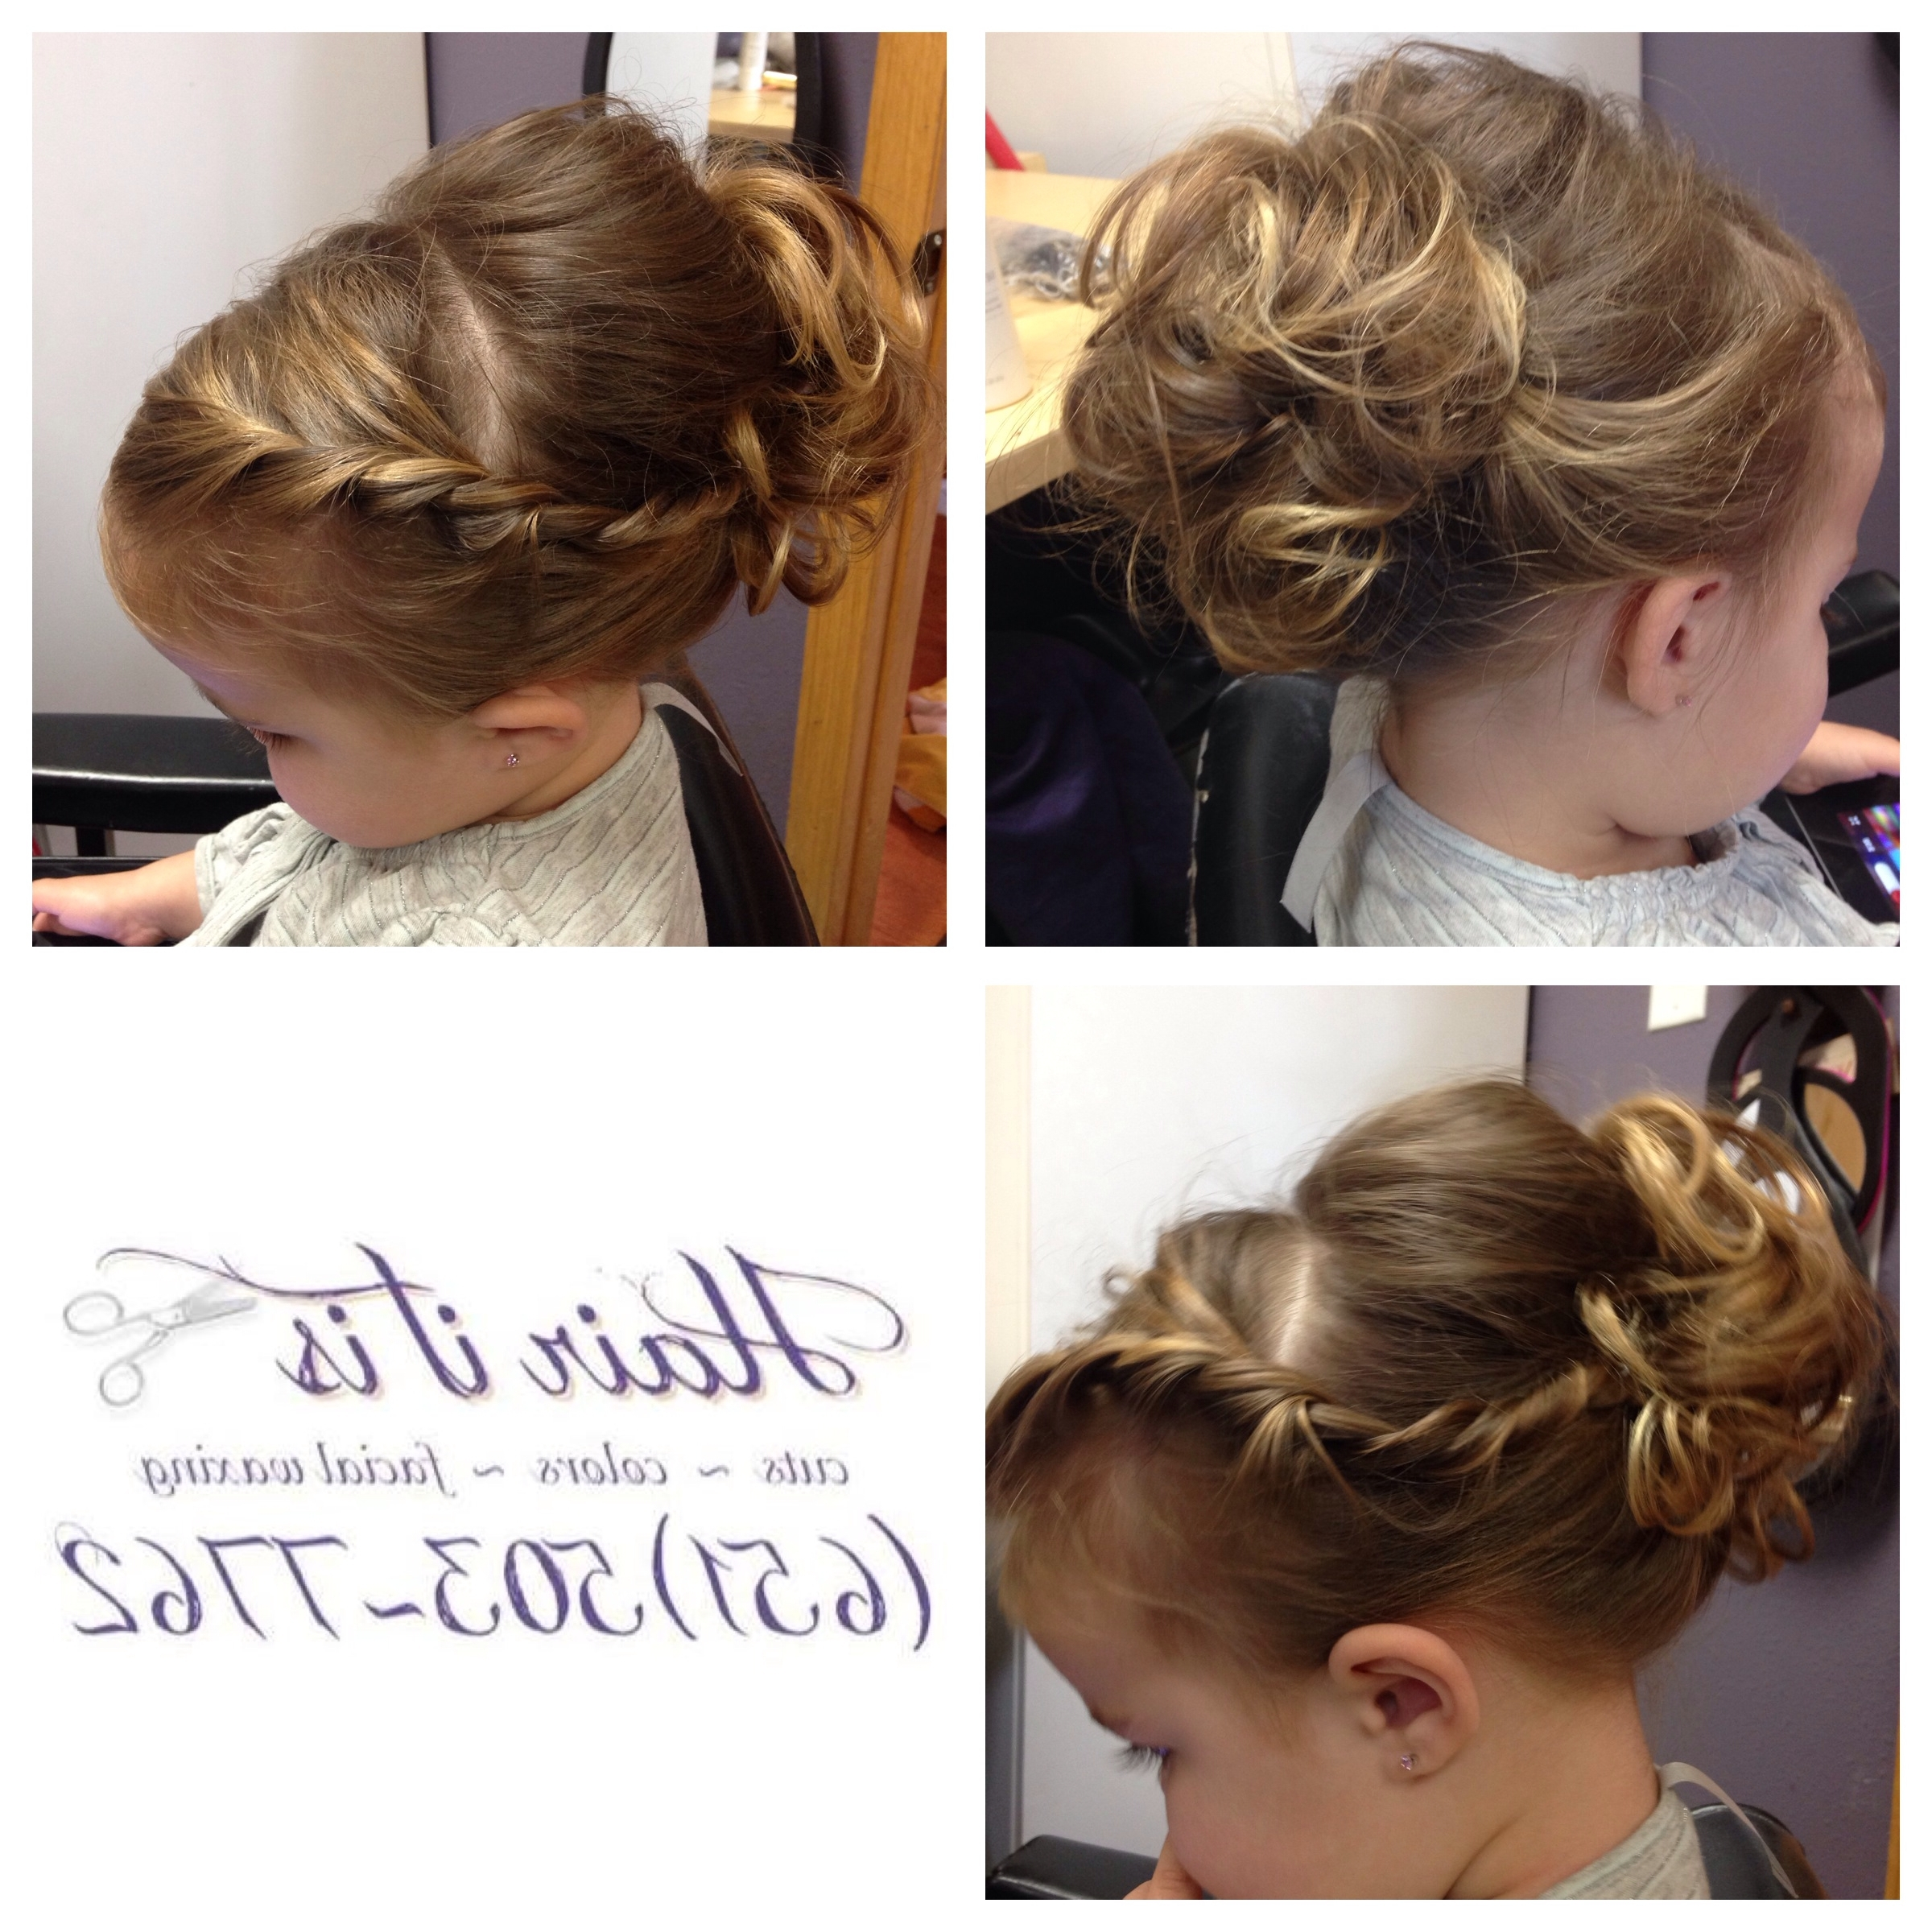 15 Best Collection Of Childrens Updo Hairstyles